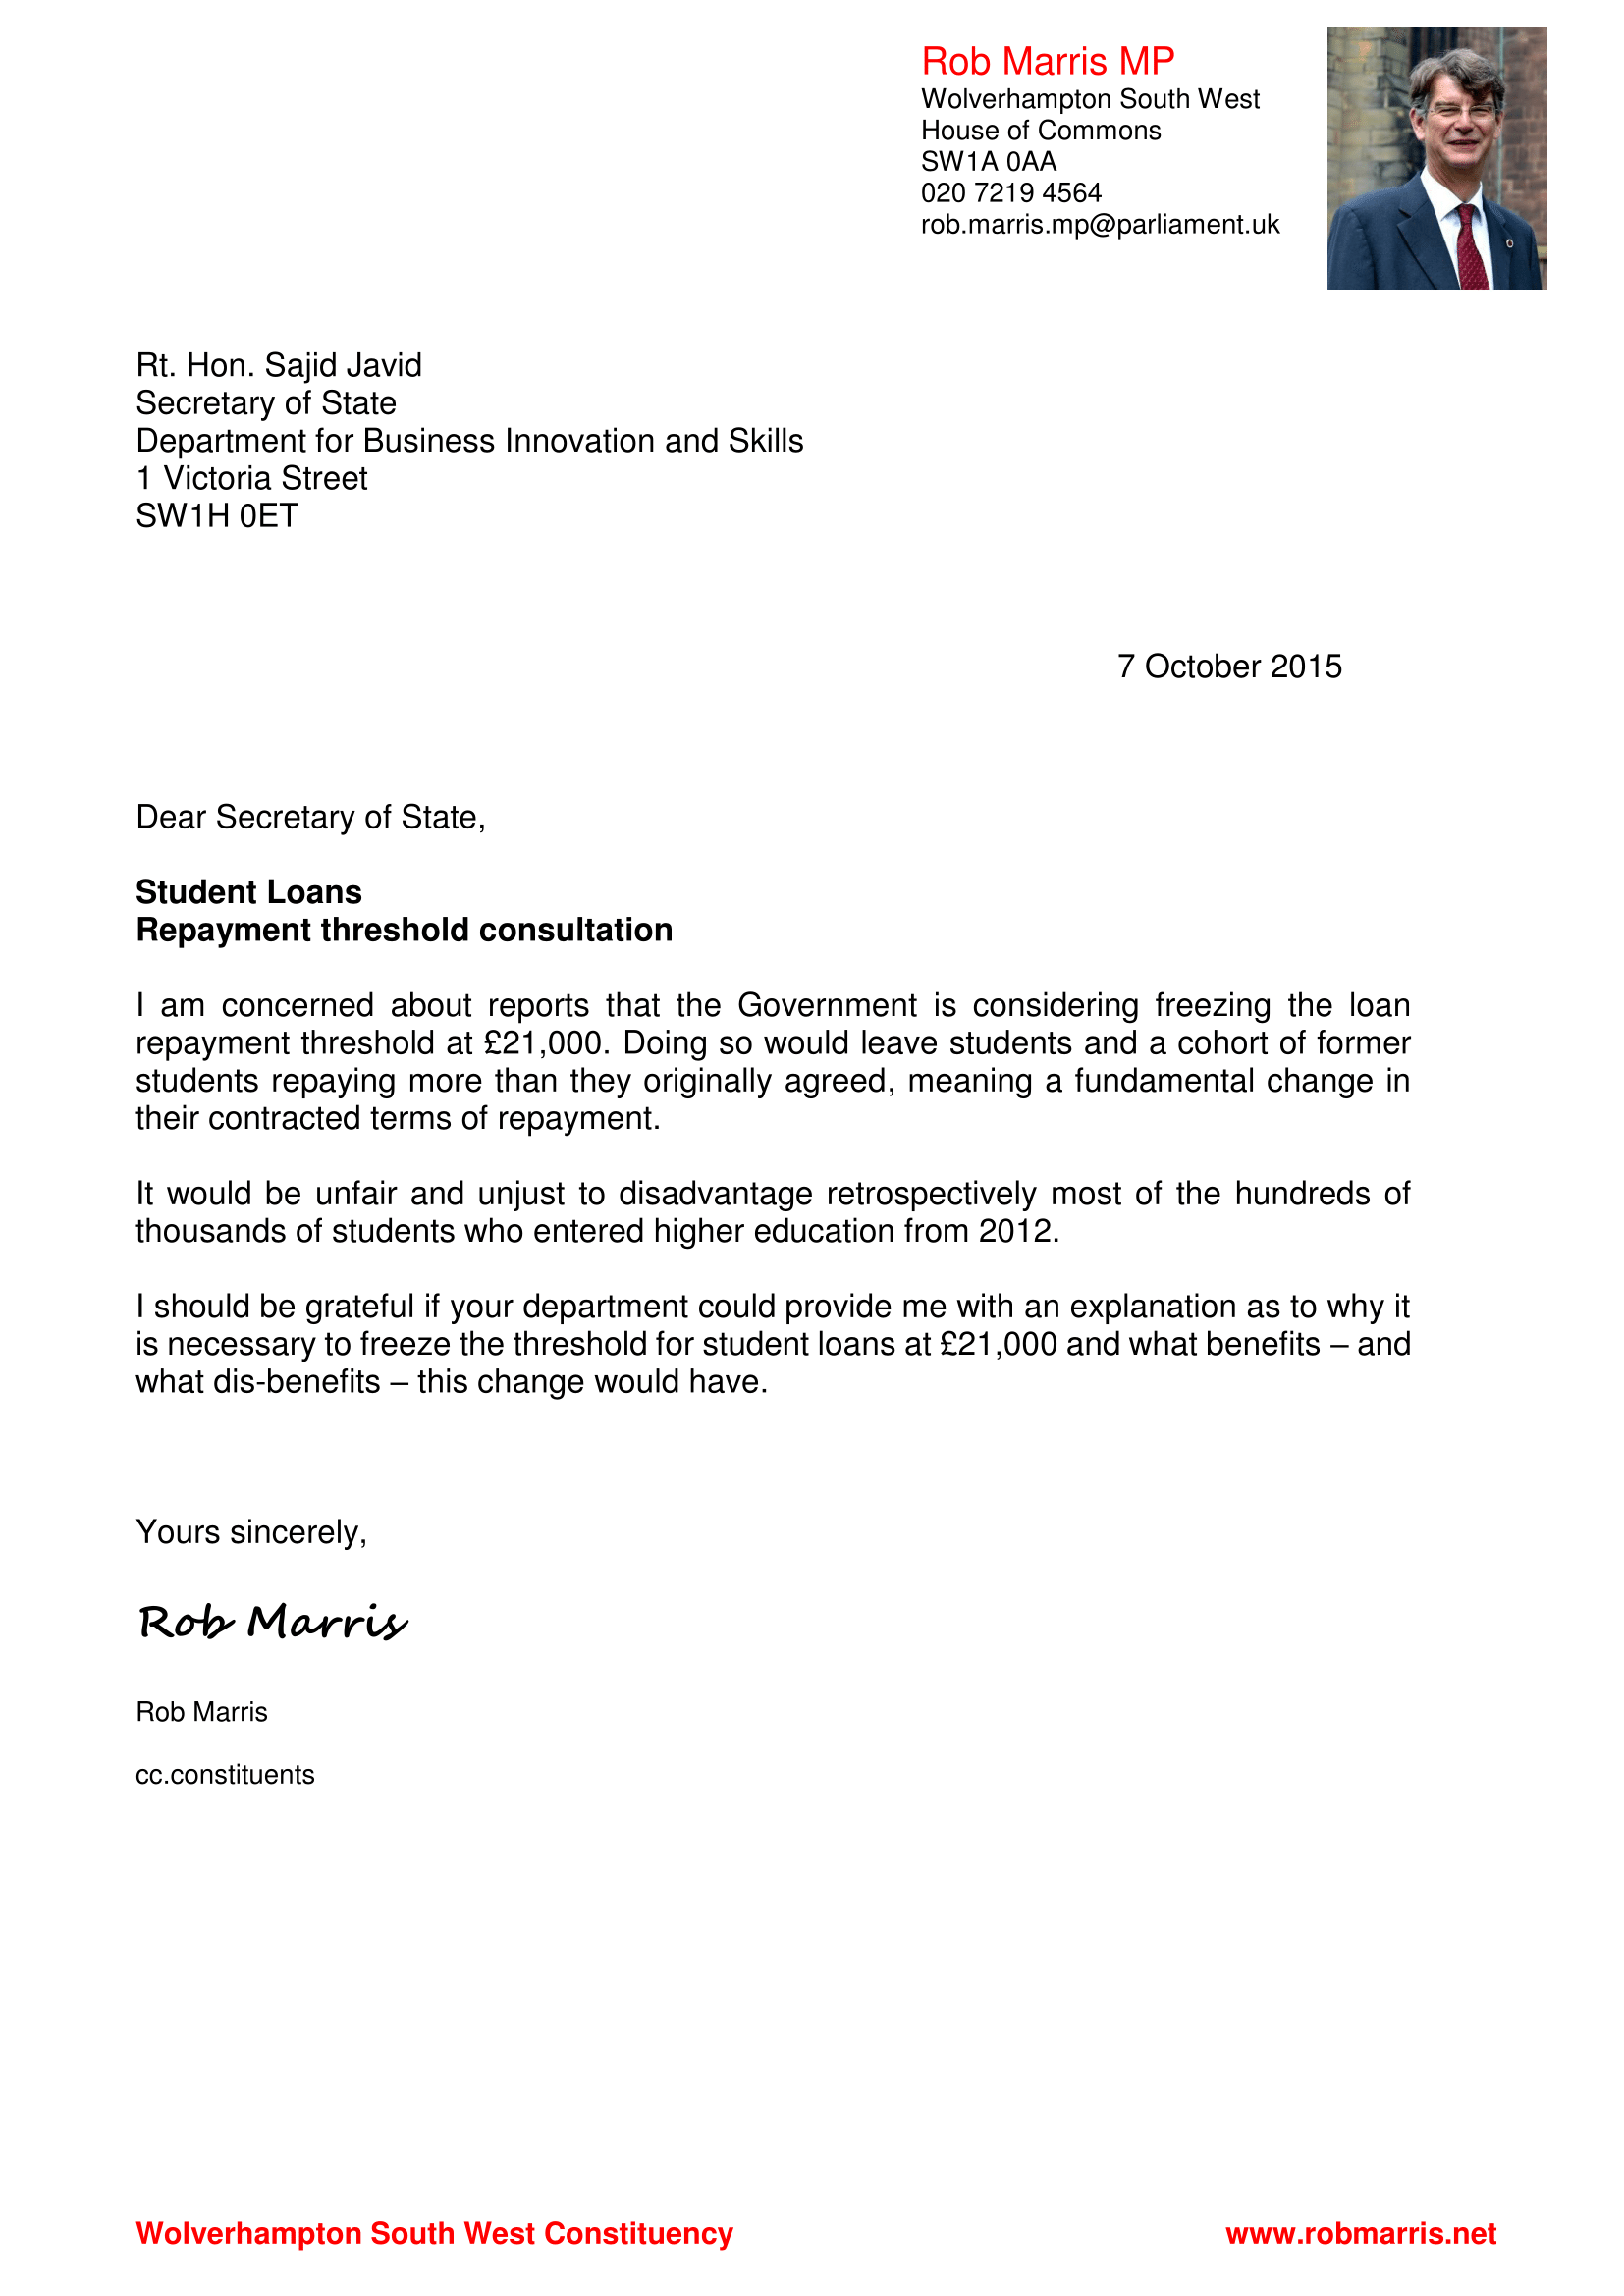 Letter to SOS